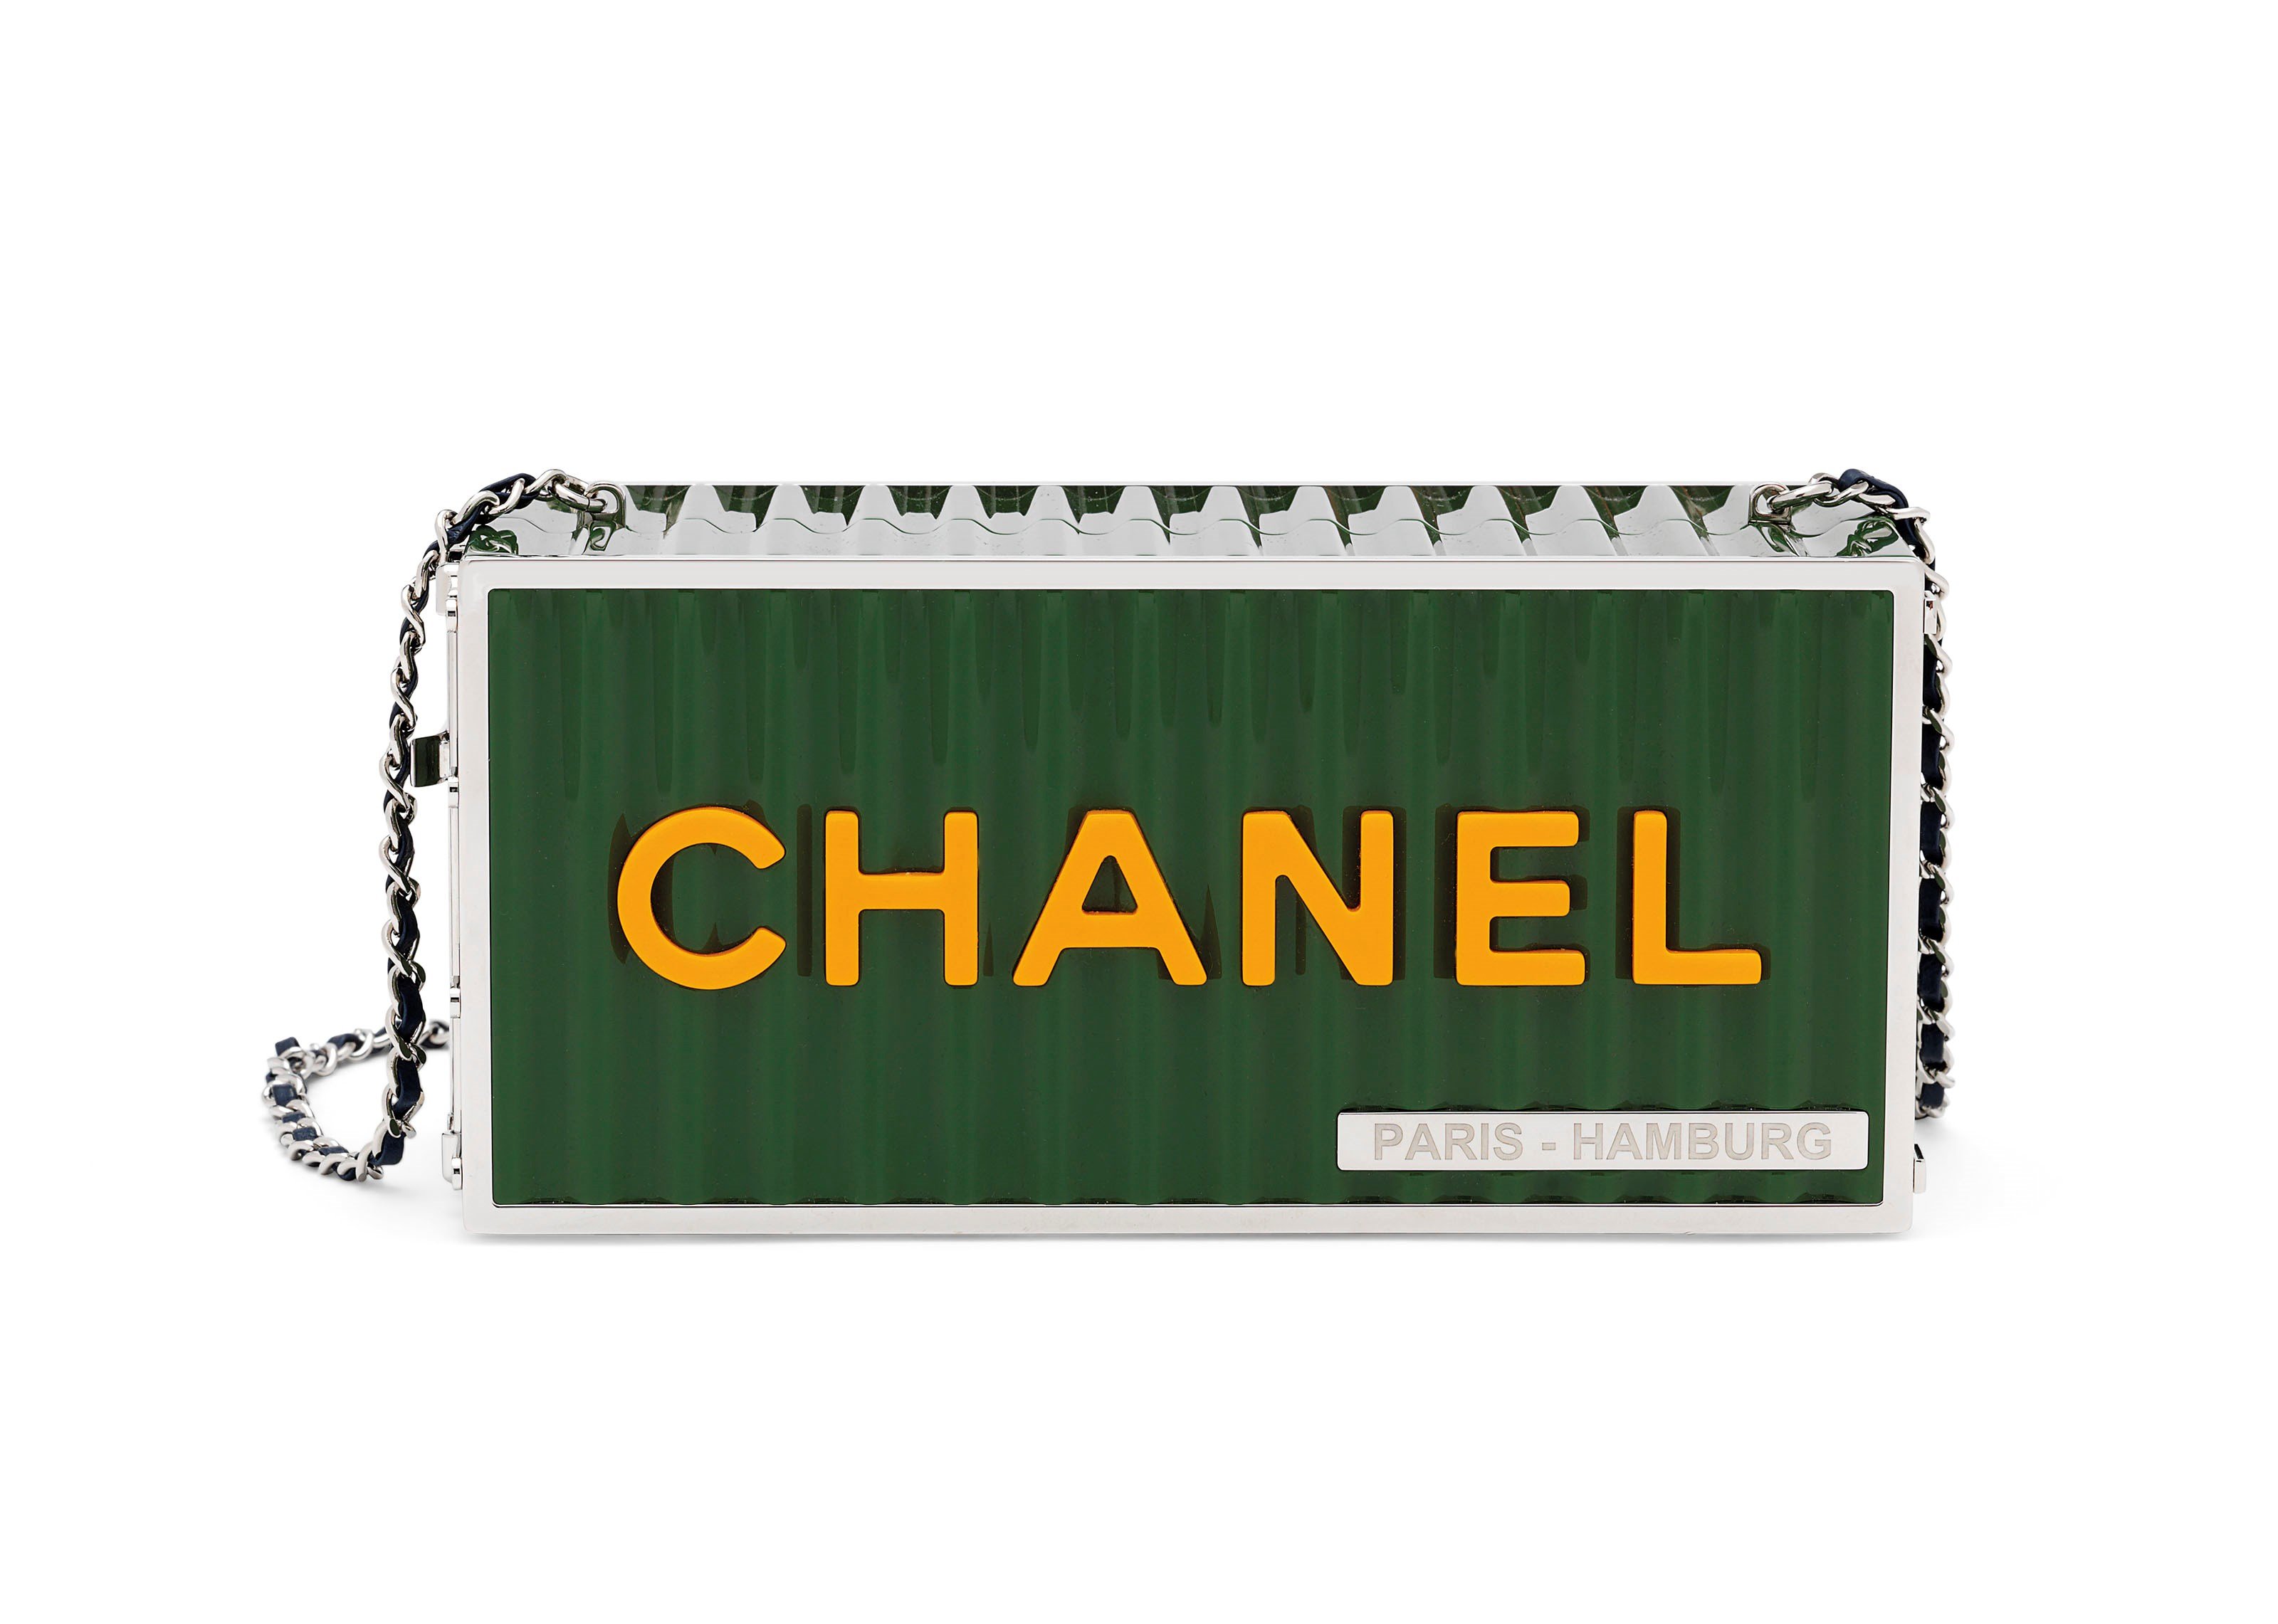 A Métiers D'Art Paris-Hamburg forest green lucite Shipping Container evening bag, Chanel, 2018. 19.5 w x 9 h x 8 d cm. Estimate £6,000-8,000. This lot is offered in Handbags & Accessories on 12 December 2018 at Christie's in London